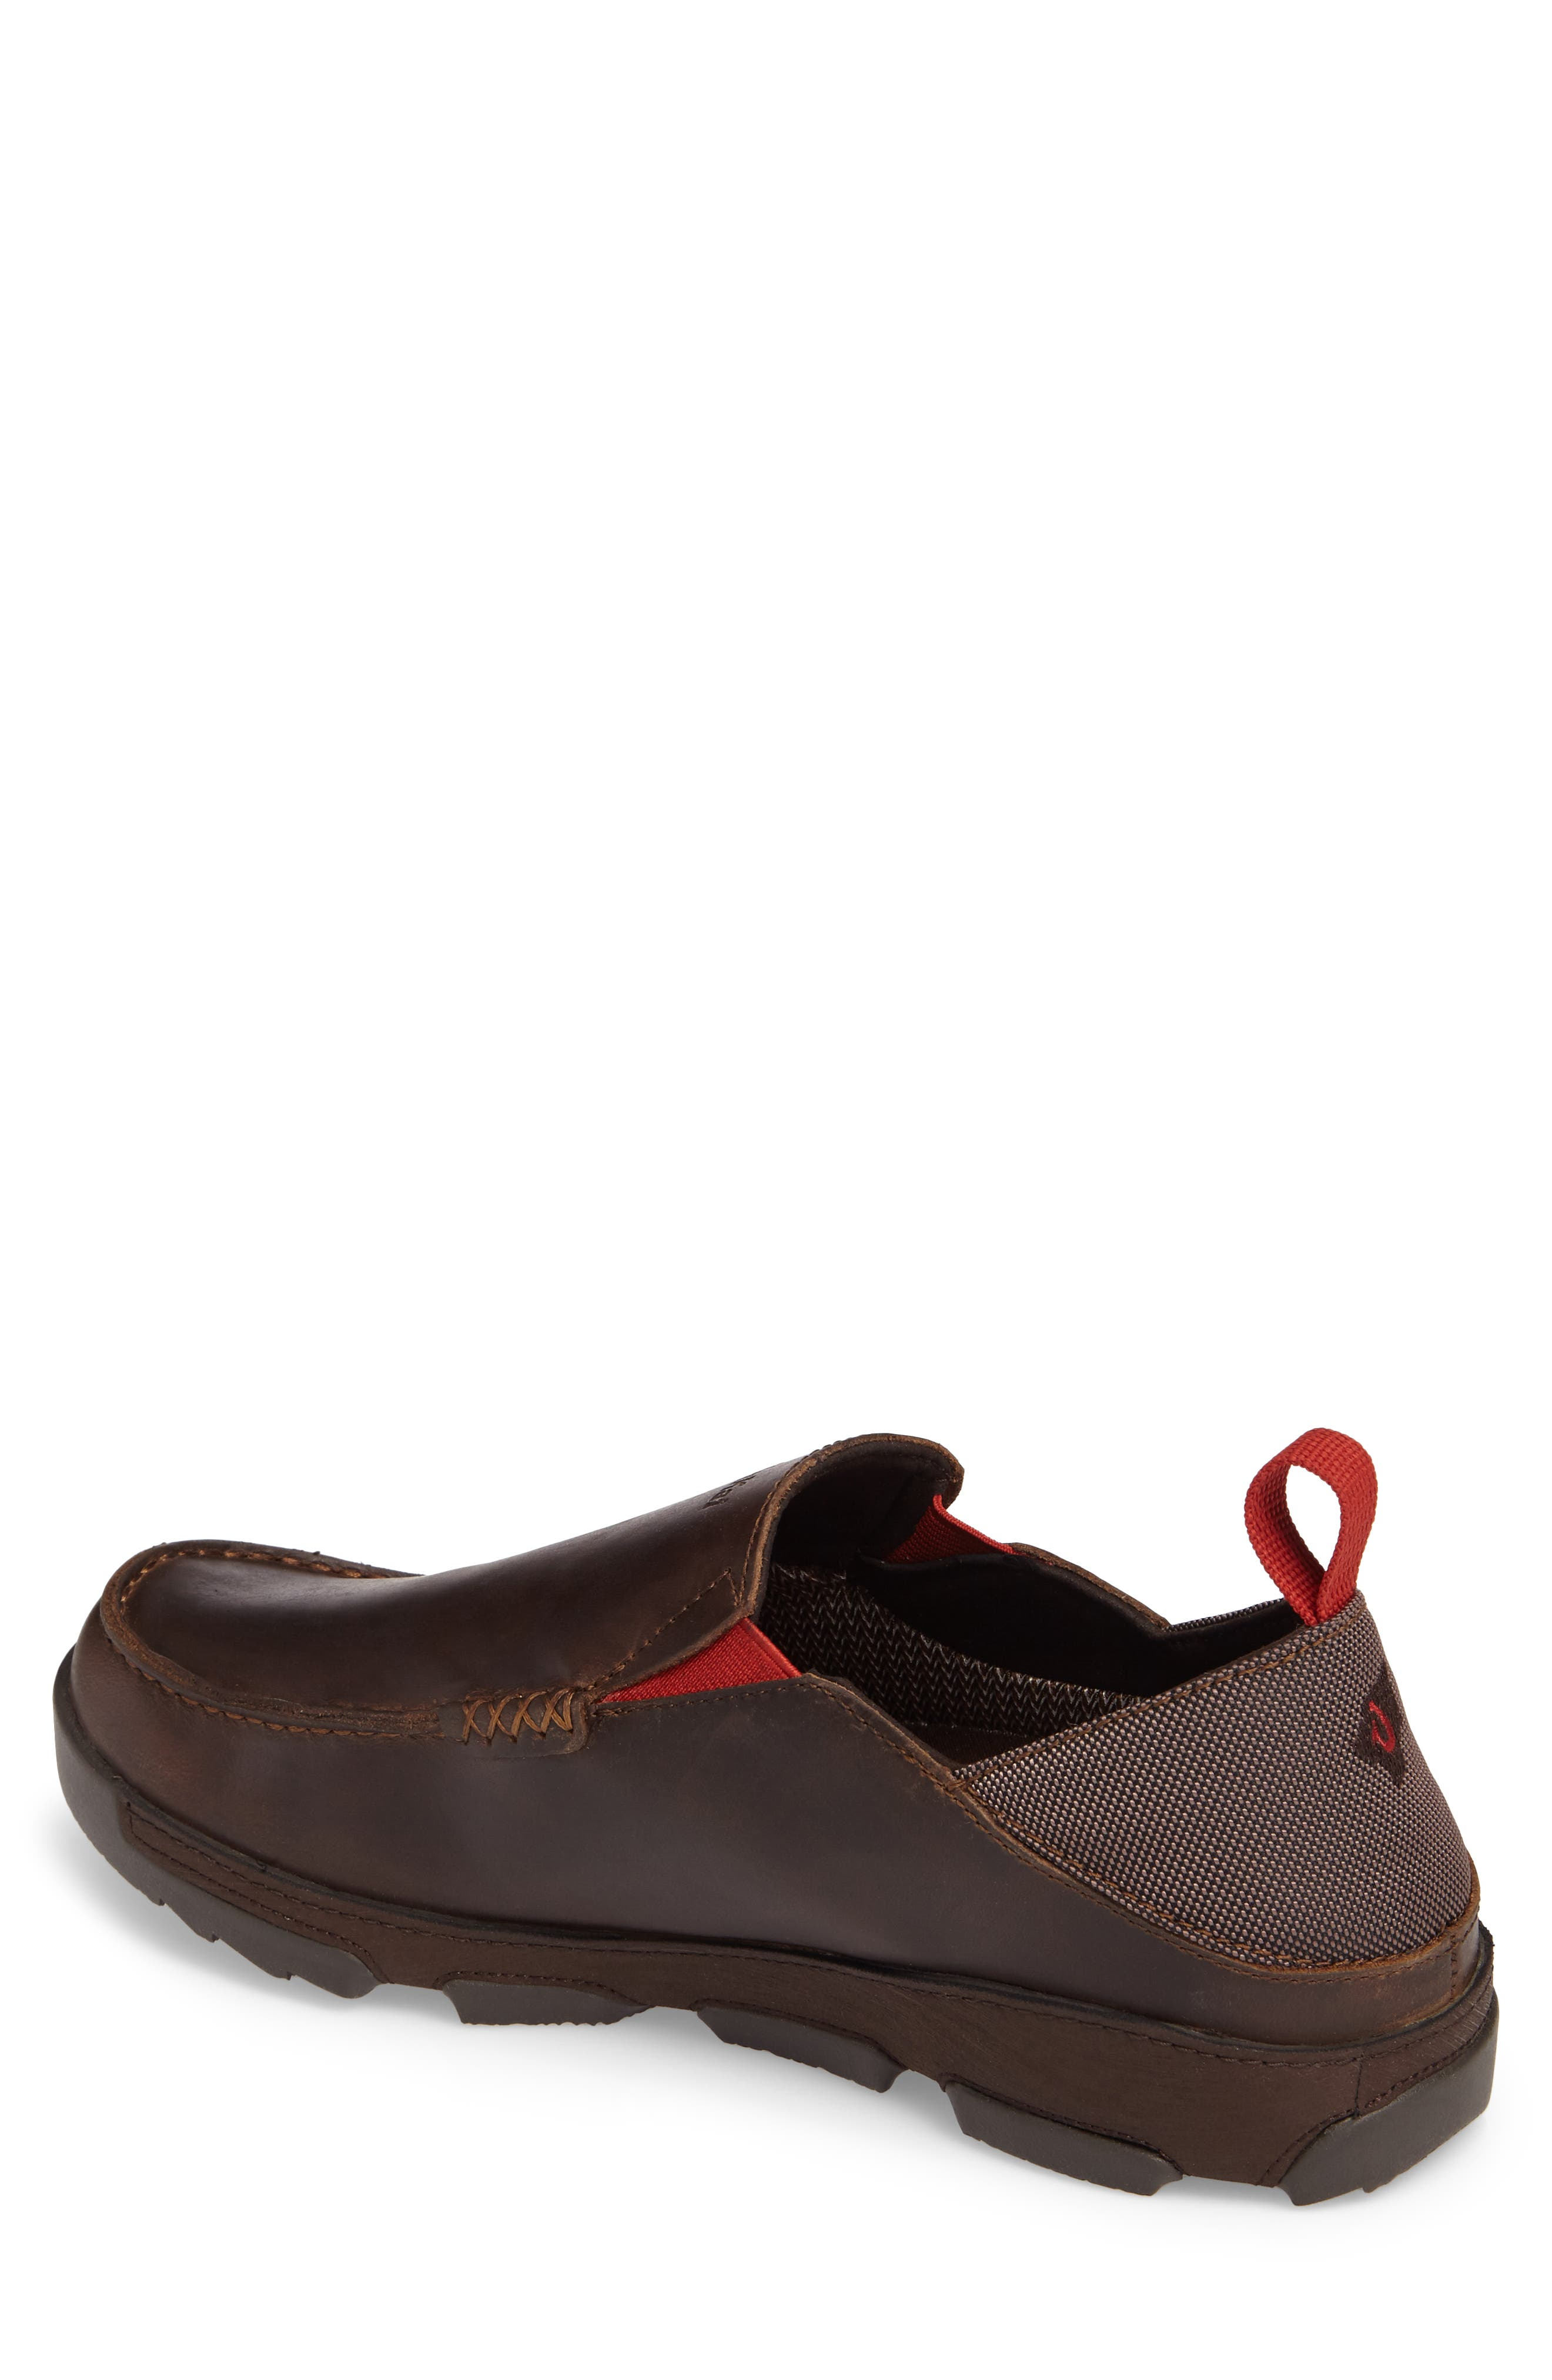 Na'I Collapsible Waterproof Slip-On,                             Alternate thumbnail 2, color,                             CAROB/ DARK WOOD LEATHER